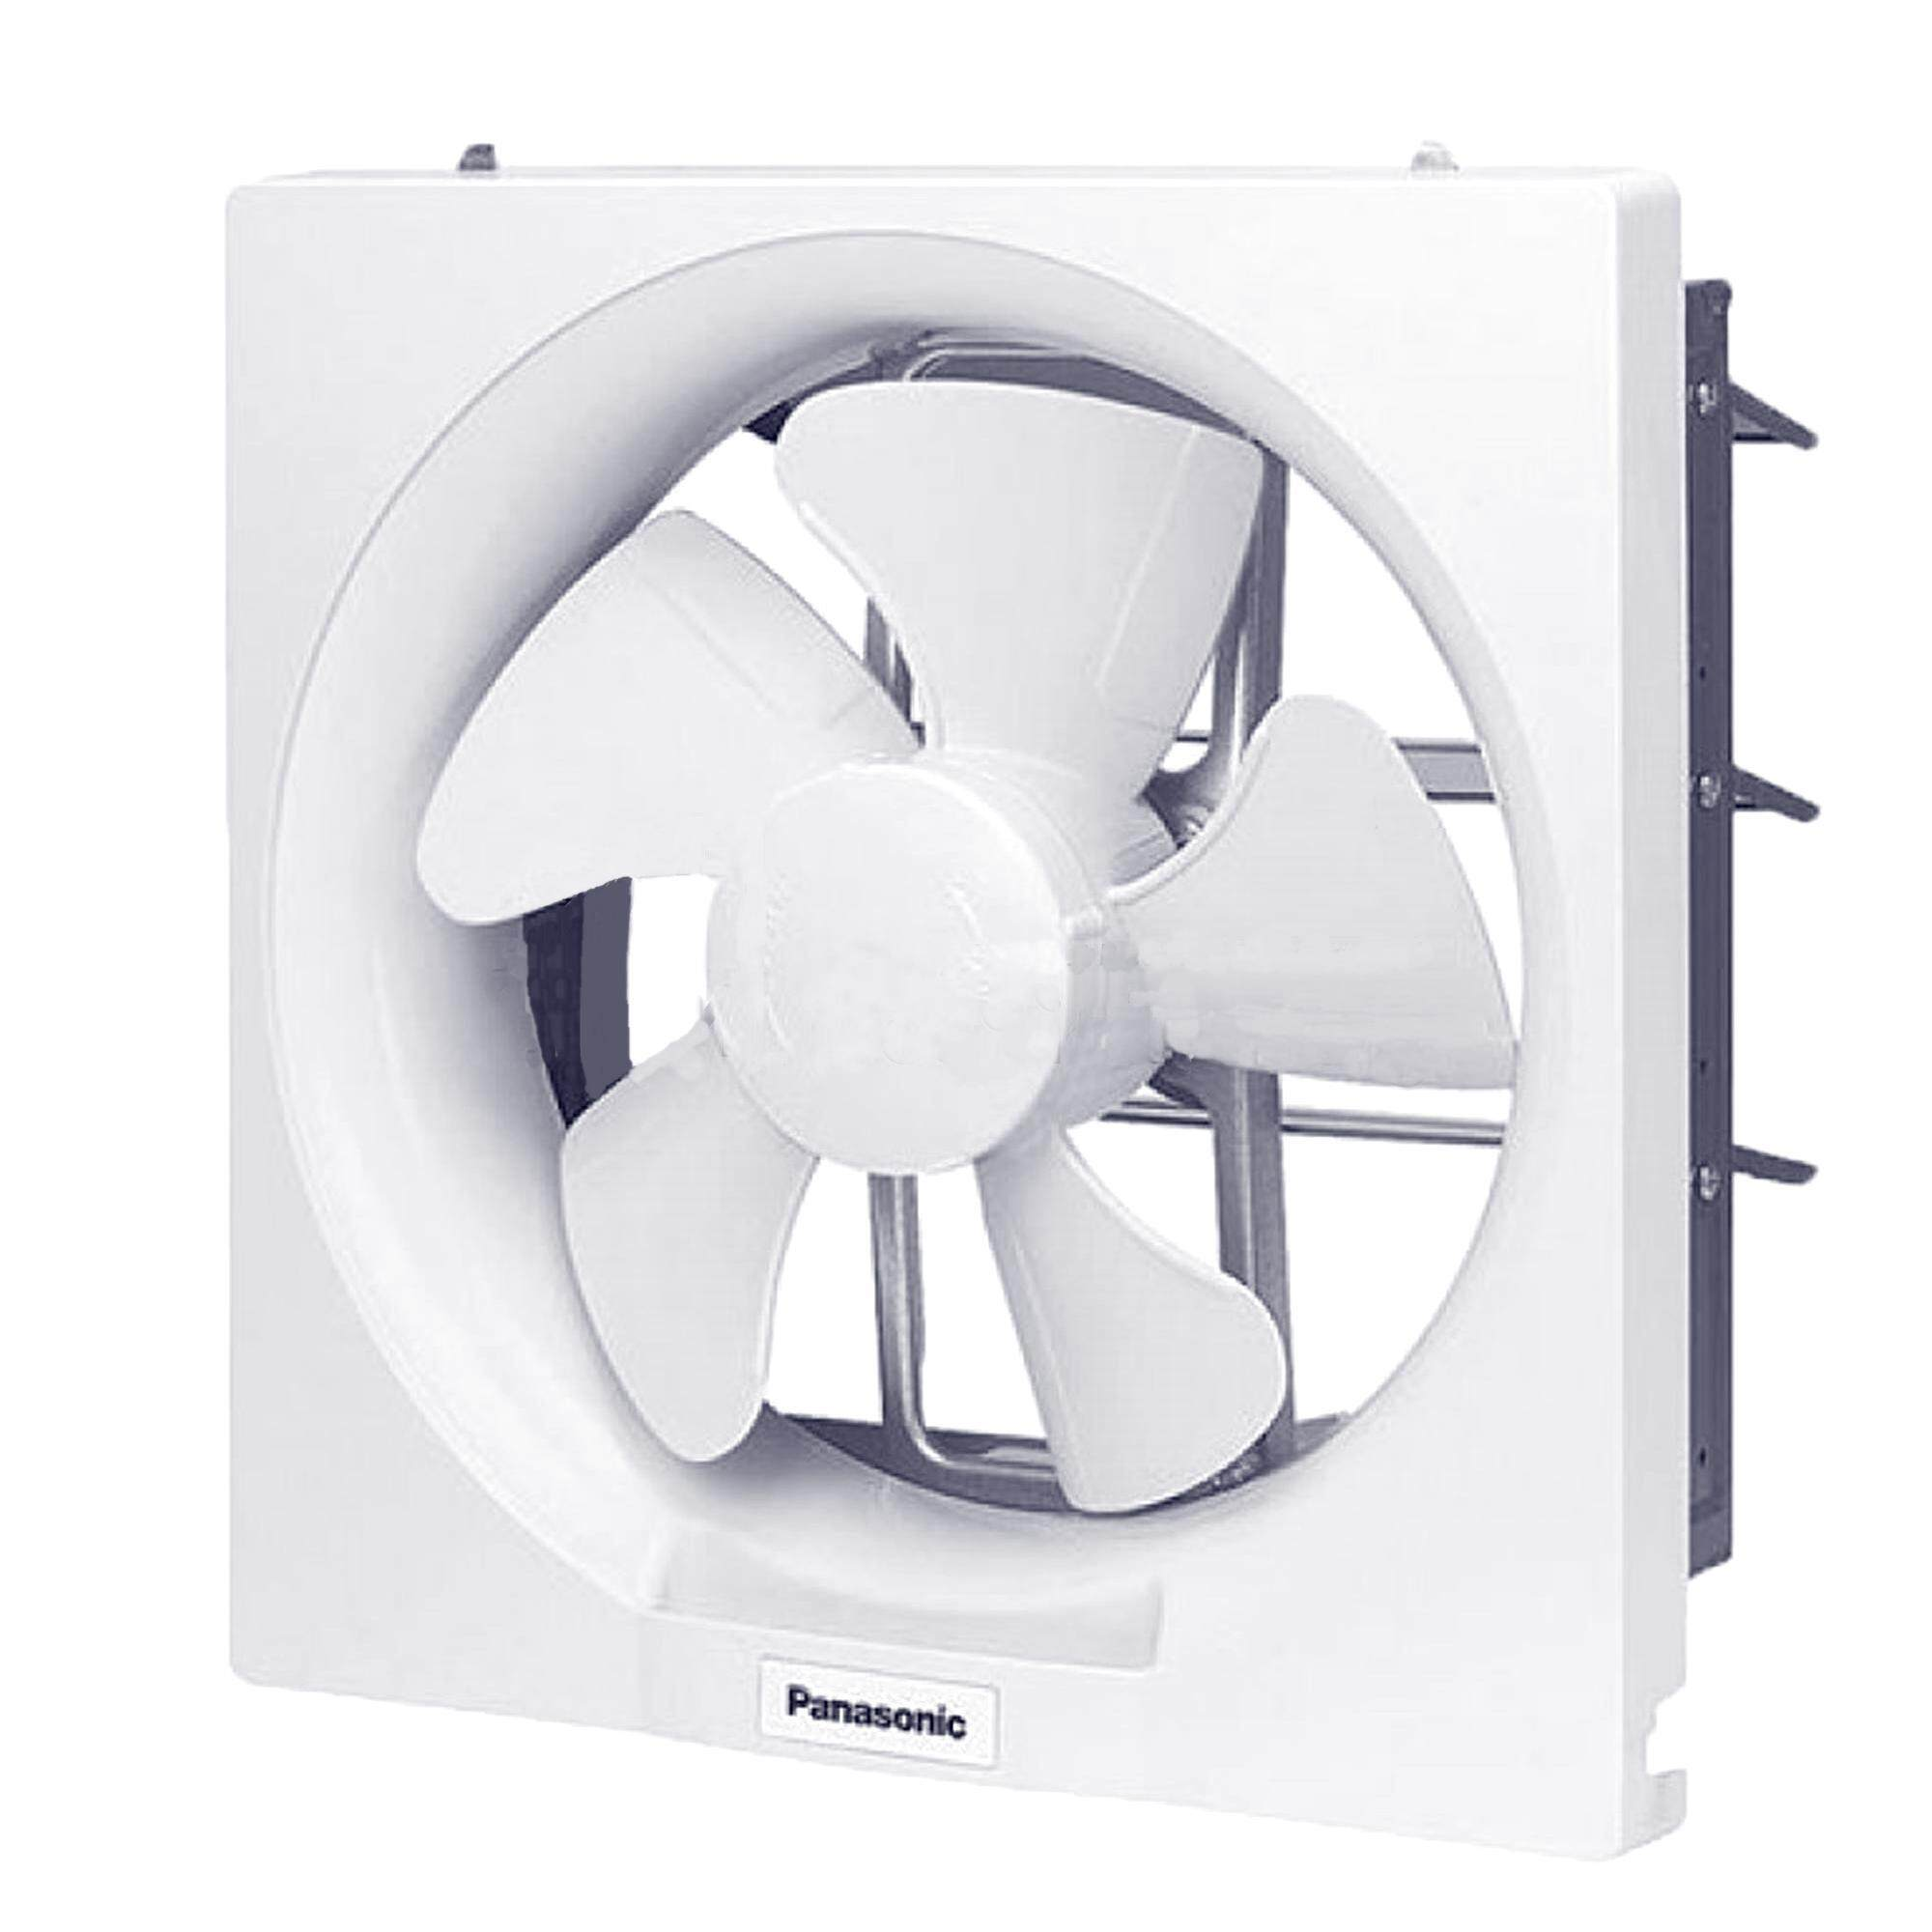 Ventilation Fans For The Best Price In Malaysia Electrical Wiring Bathroom Fan Bath Panasonic 200mm 8 Inch Wall Mount Ventilating Fv 20aum8 White